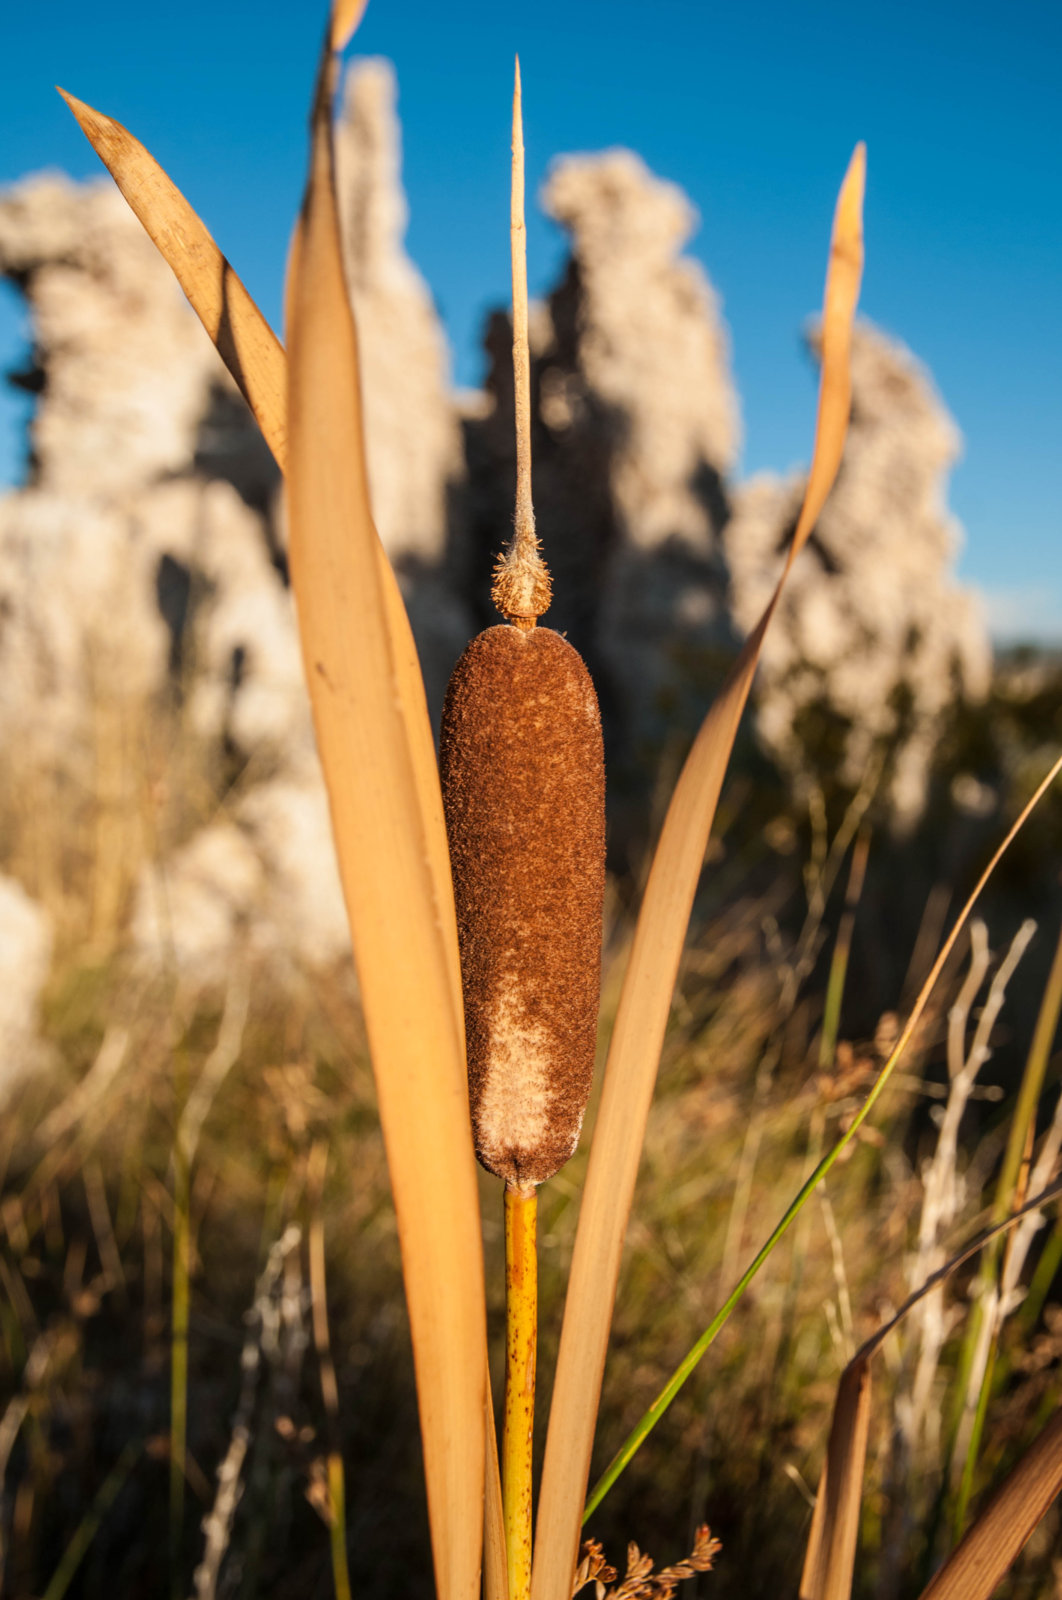 mono-cattail-jpg.30970_The New American Dream: Vagabond imagery and tales from the road._Travel Stories_Squat the Planet_1:12 PM